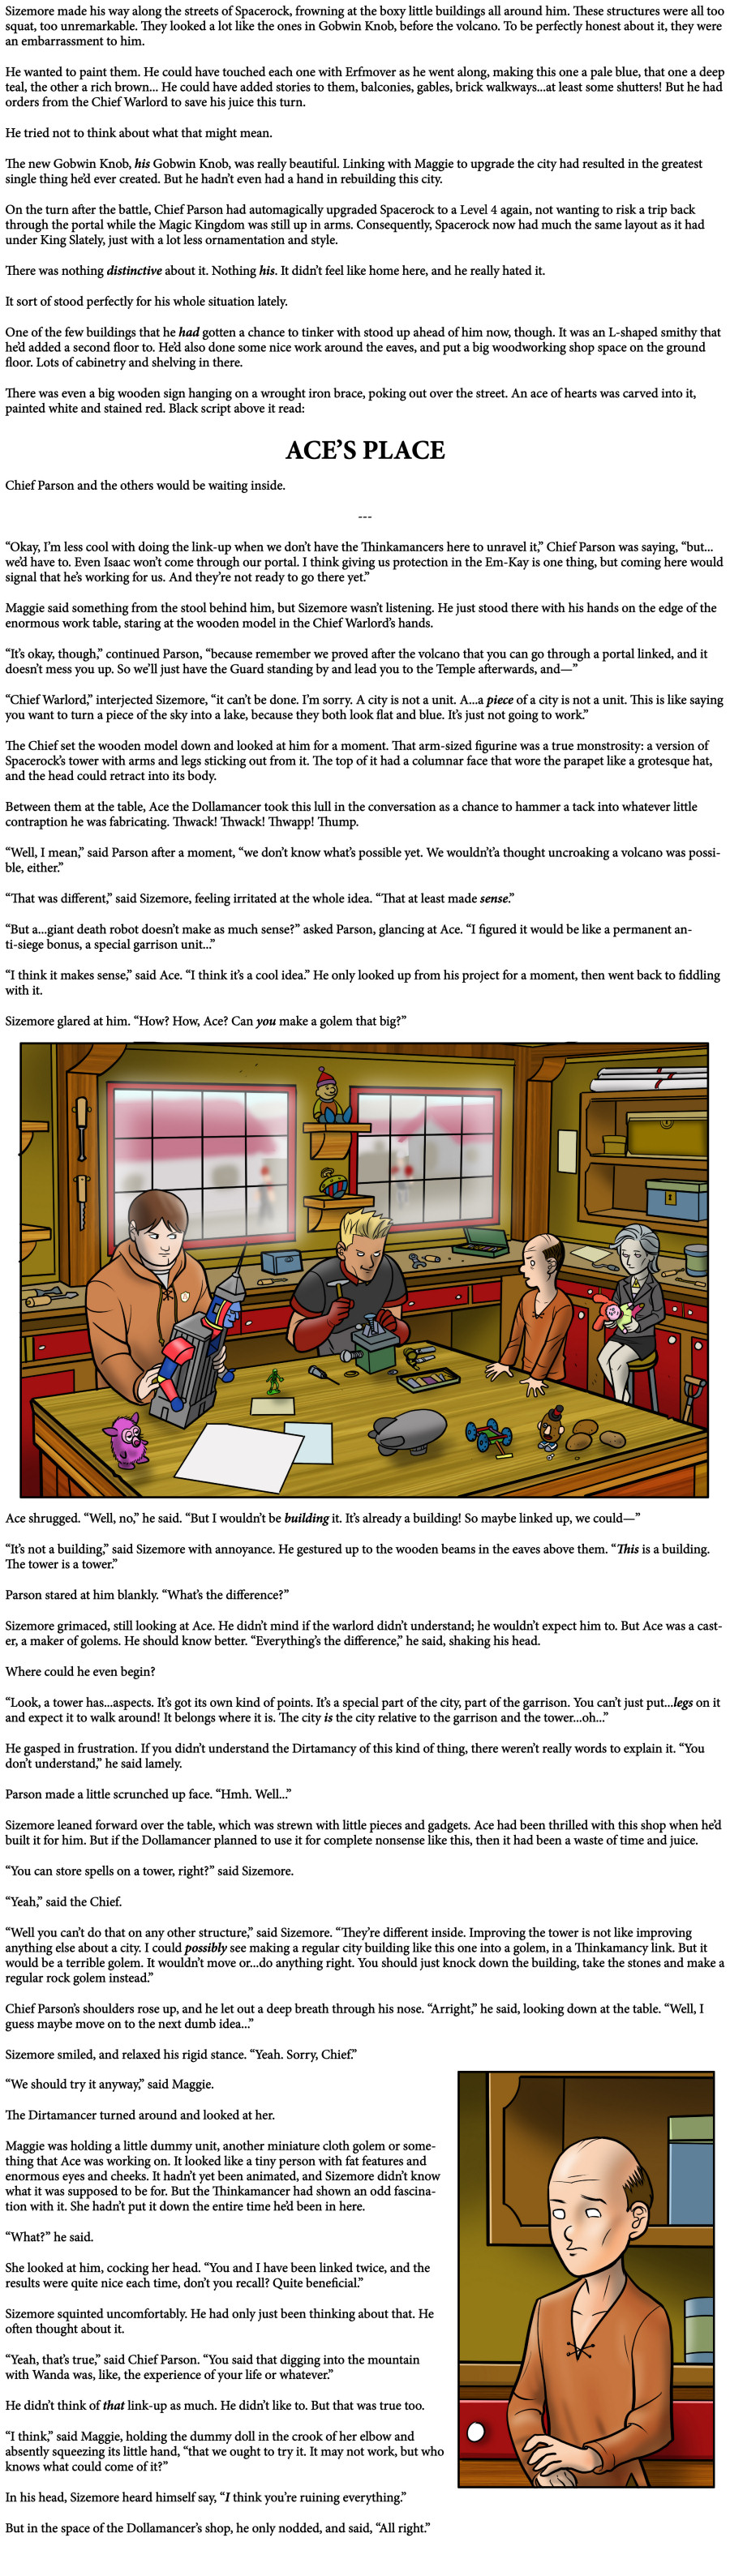 Comic - Book 3 - Page 51